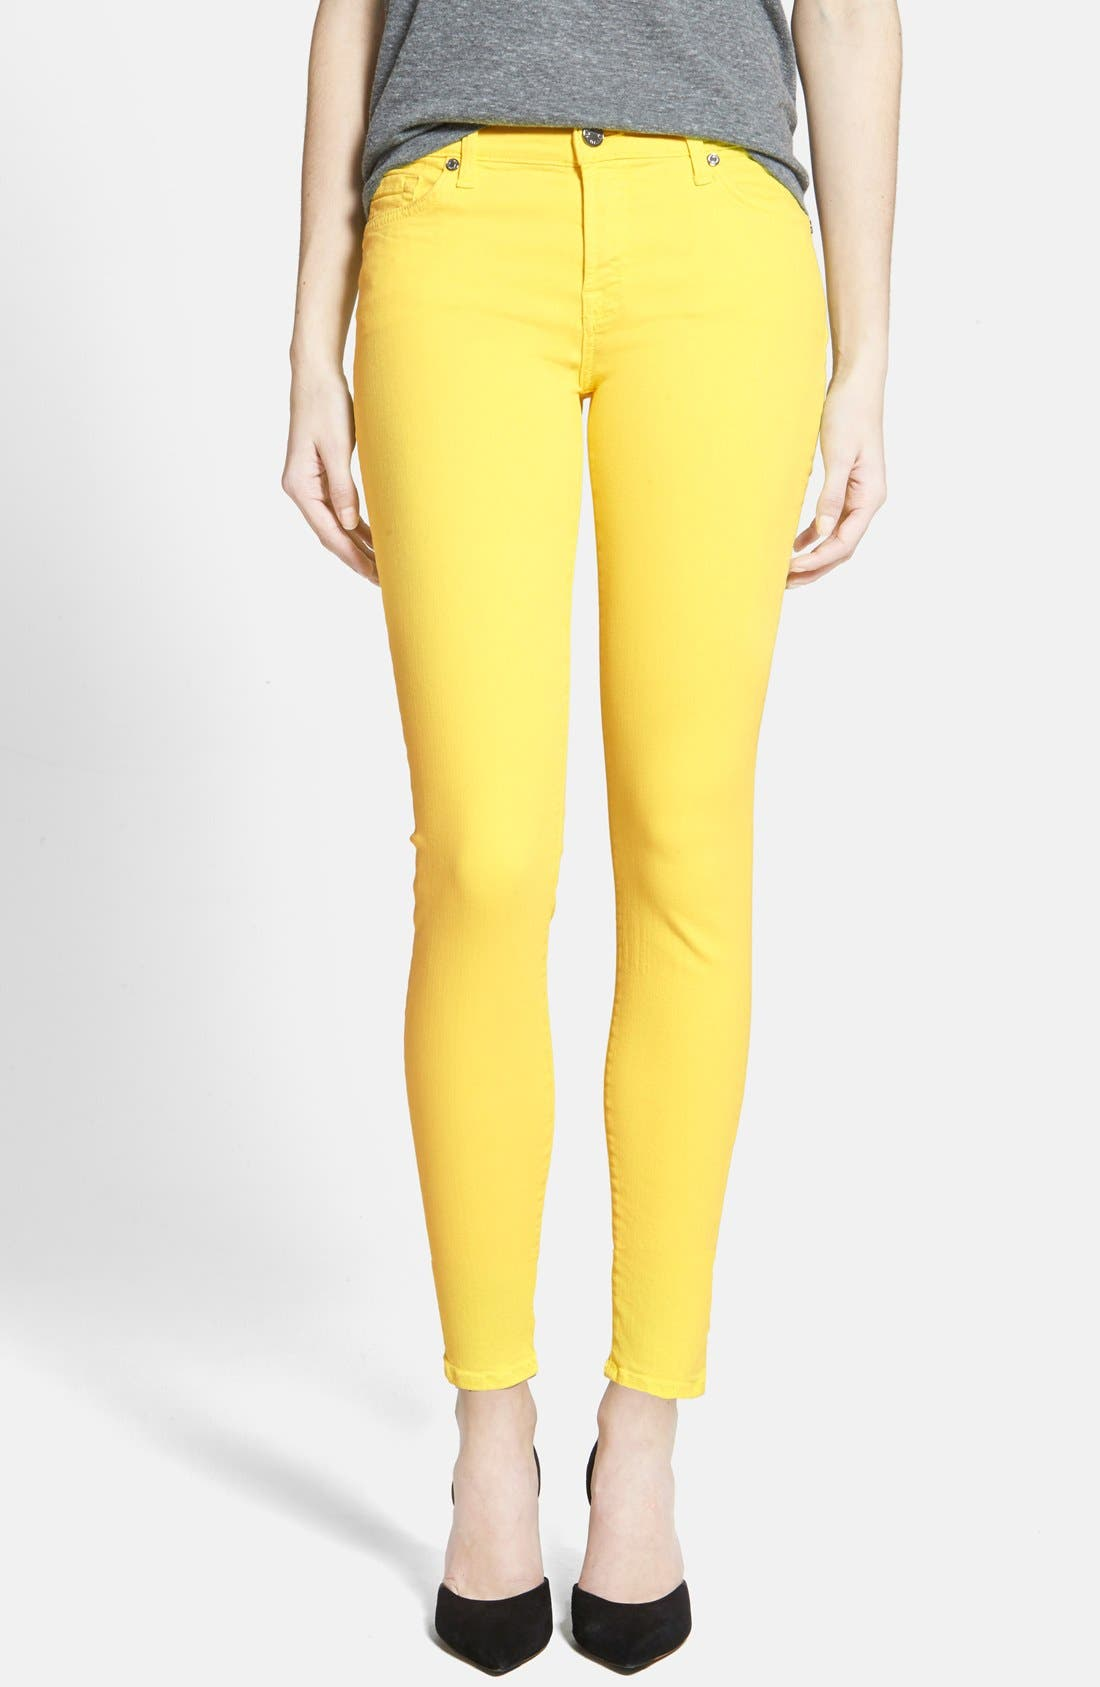 Main Image - 7 For All Mankind® 'The Ankle Skinny' Jeans (Blazing Yellow)